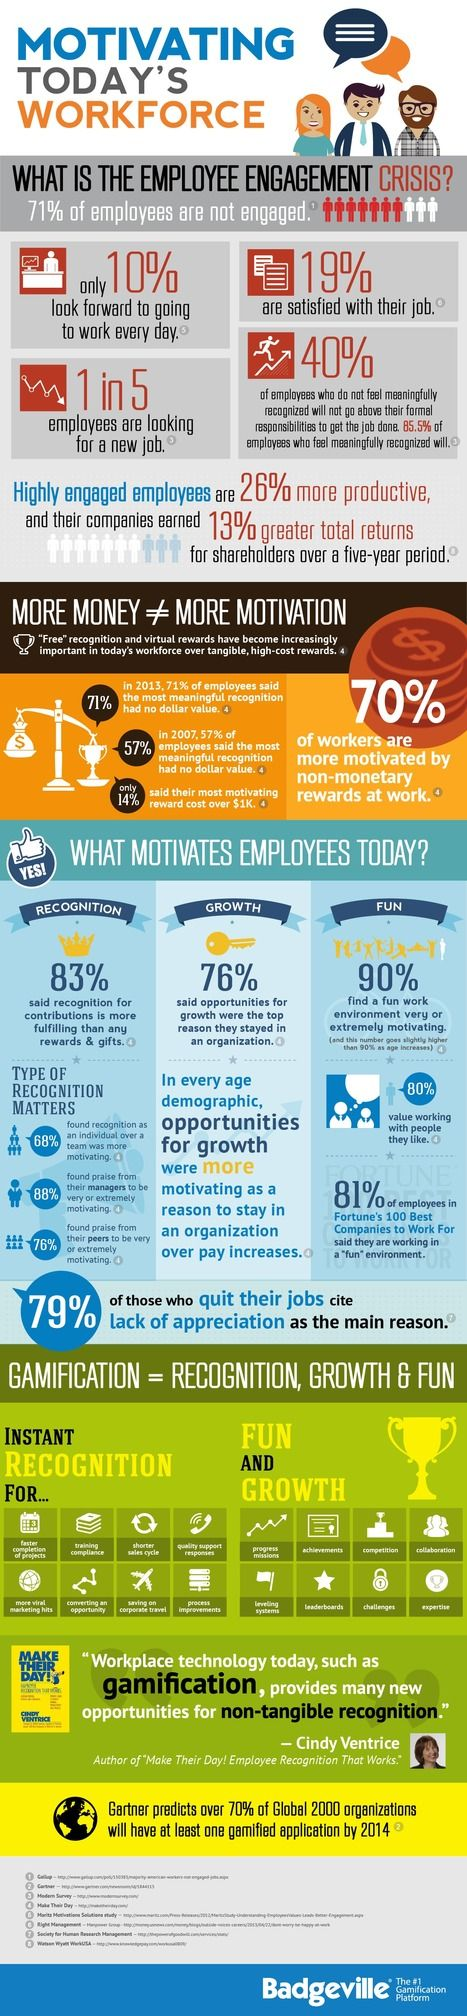 INFOGRAPHIC: What Is The Employee Engagement Crisis? | Cloud Central | Scoop.it